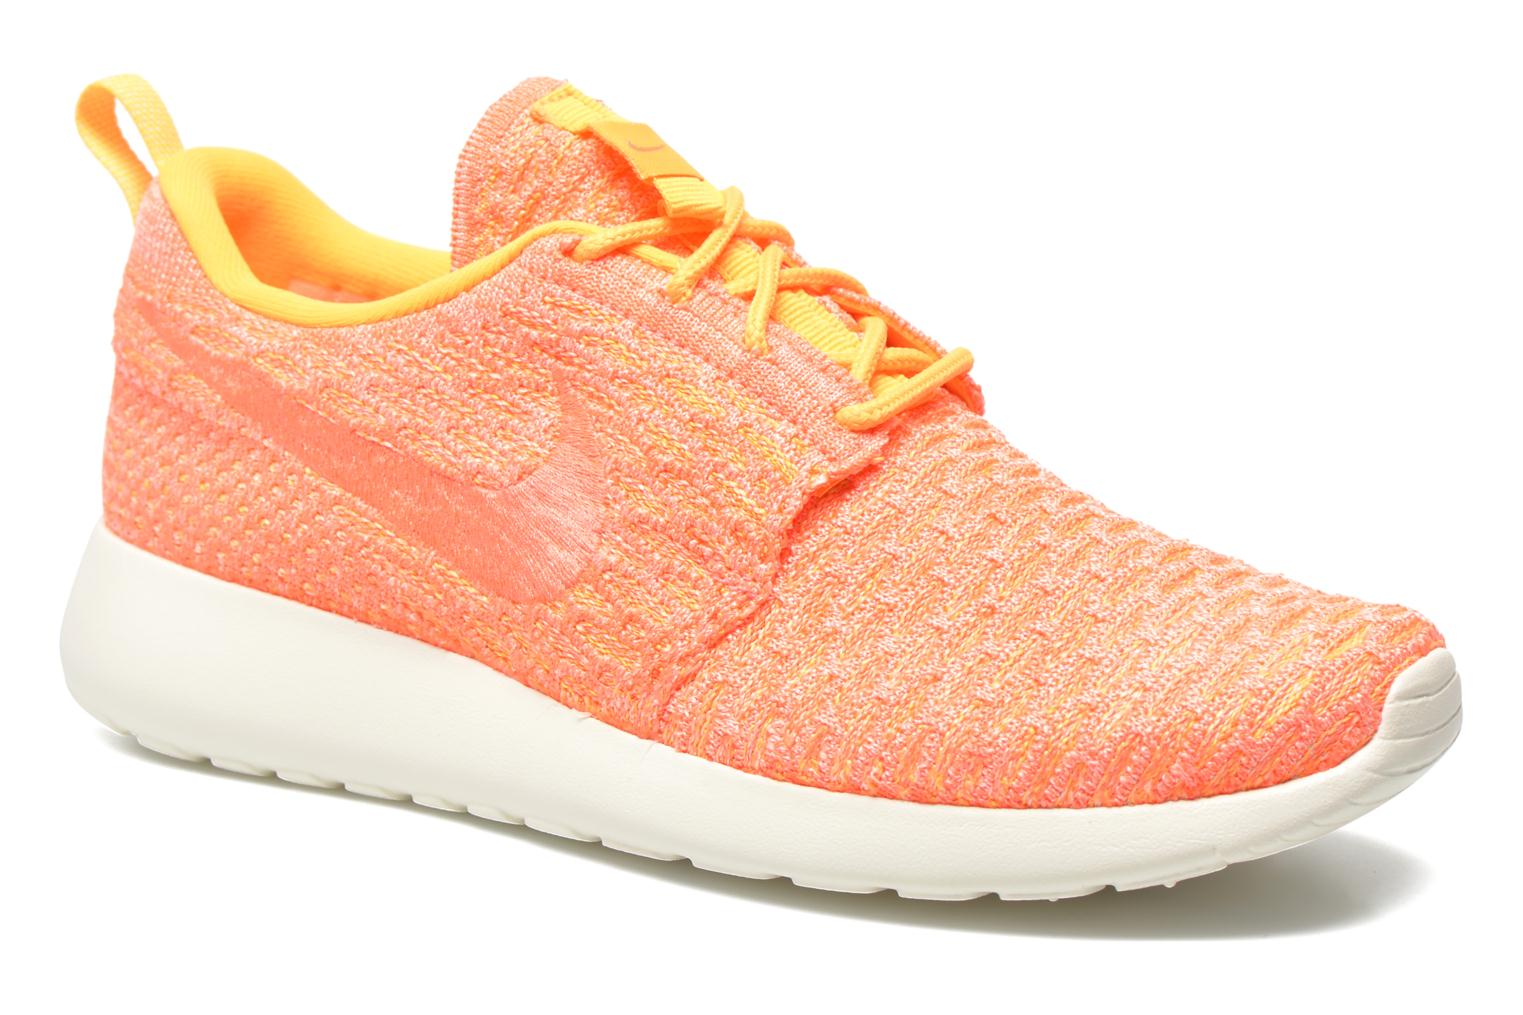 Wmns Roshe One Flyknit Laser Orange/Bright Mango-Sail